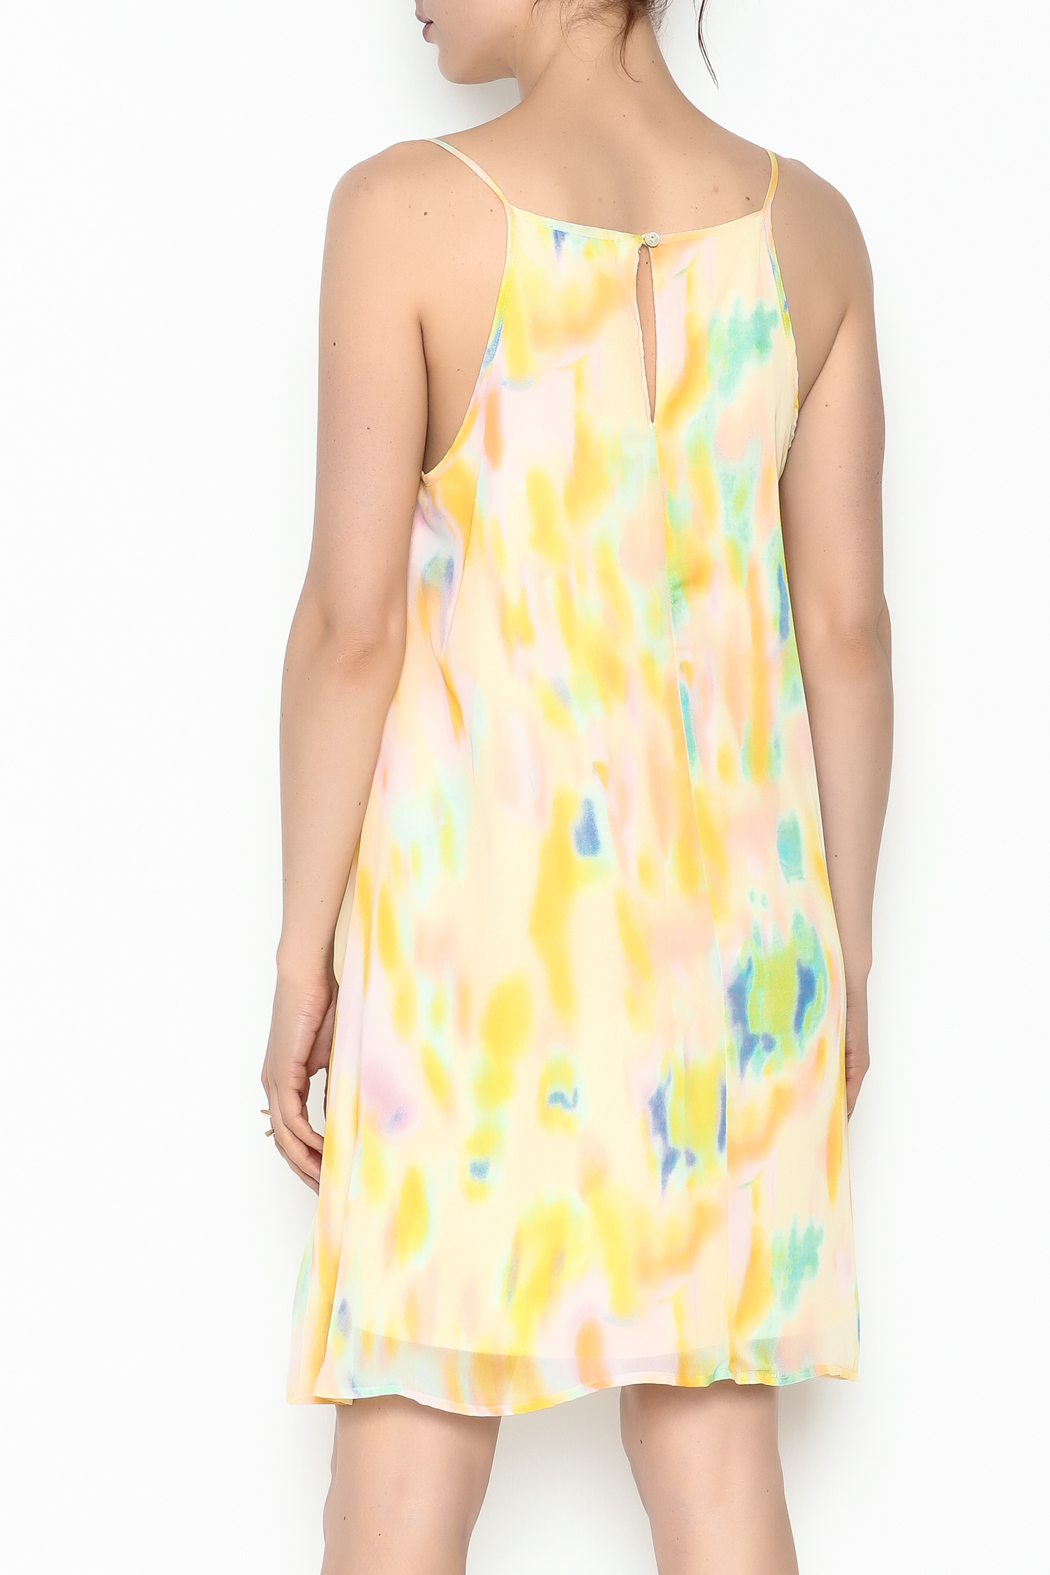 Entro Yellow Watercolor Dress - Back Cropped Image